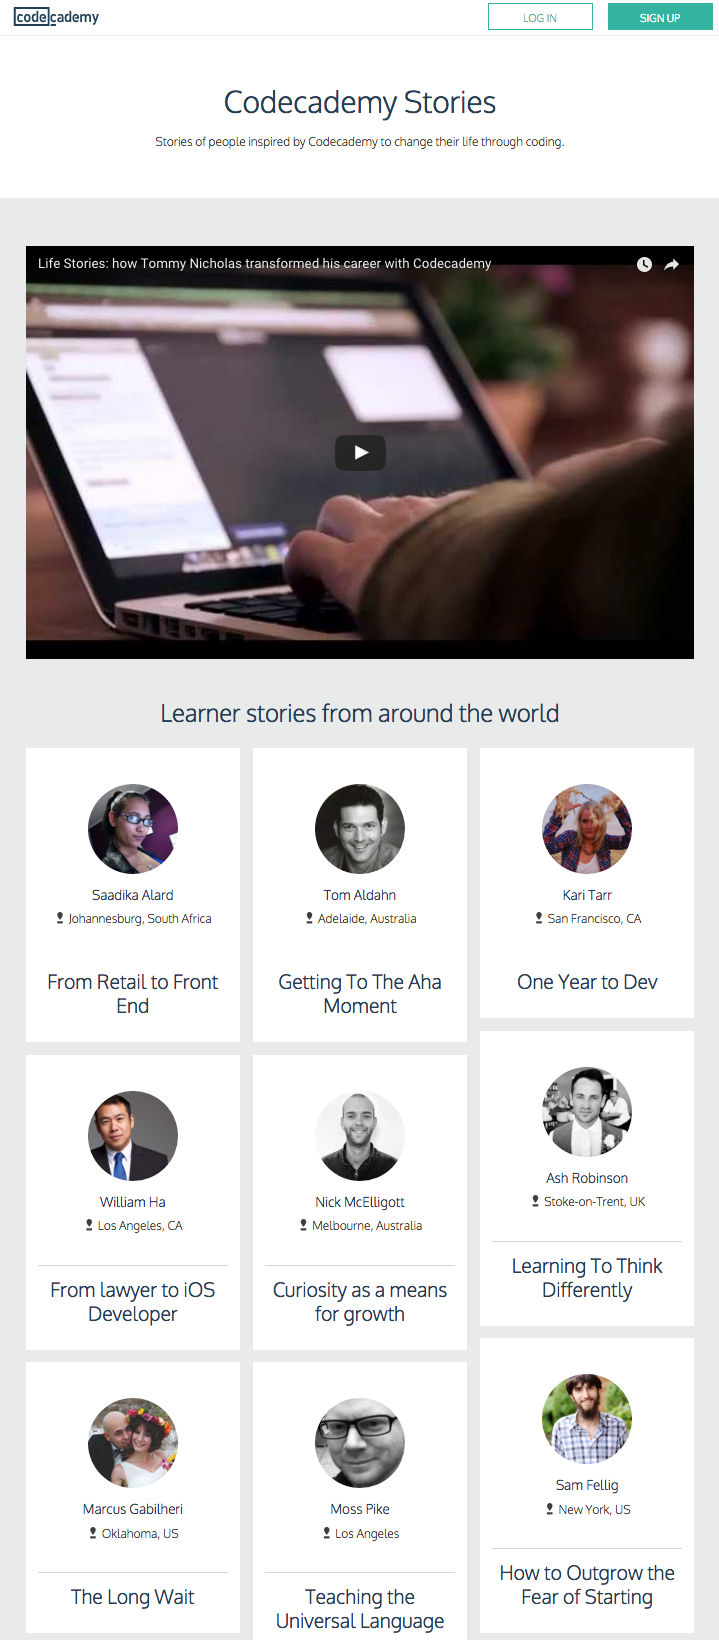 codecademy-testimonials-page.png